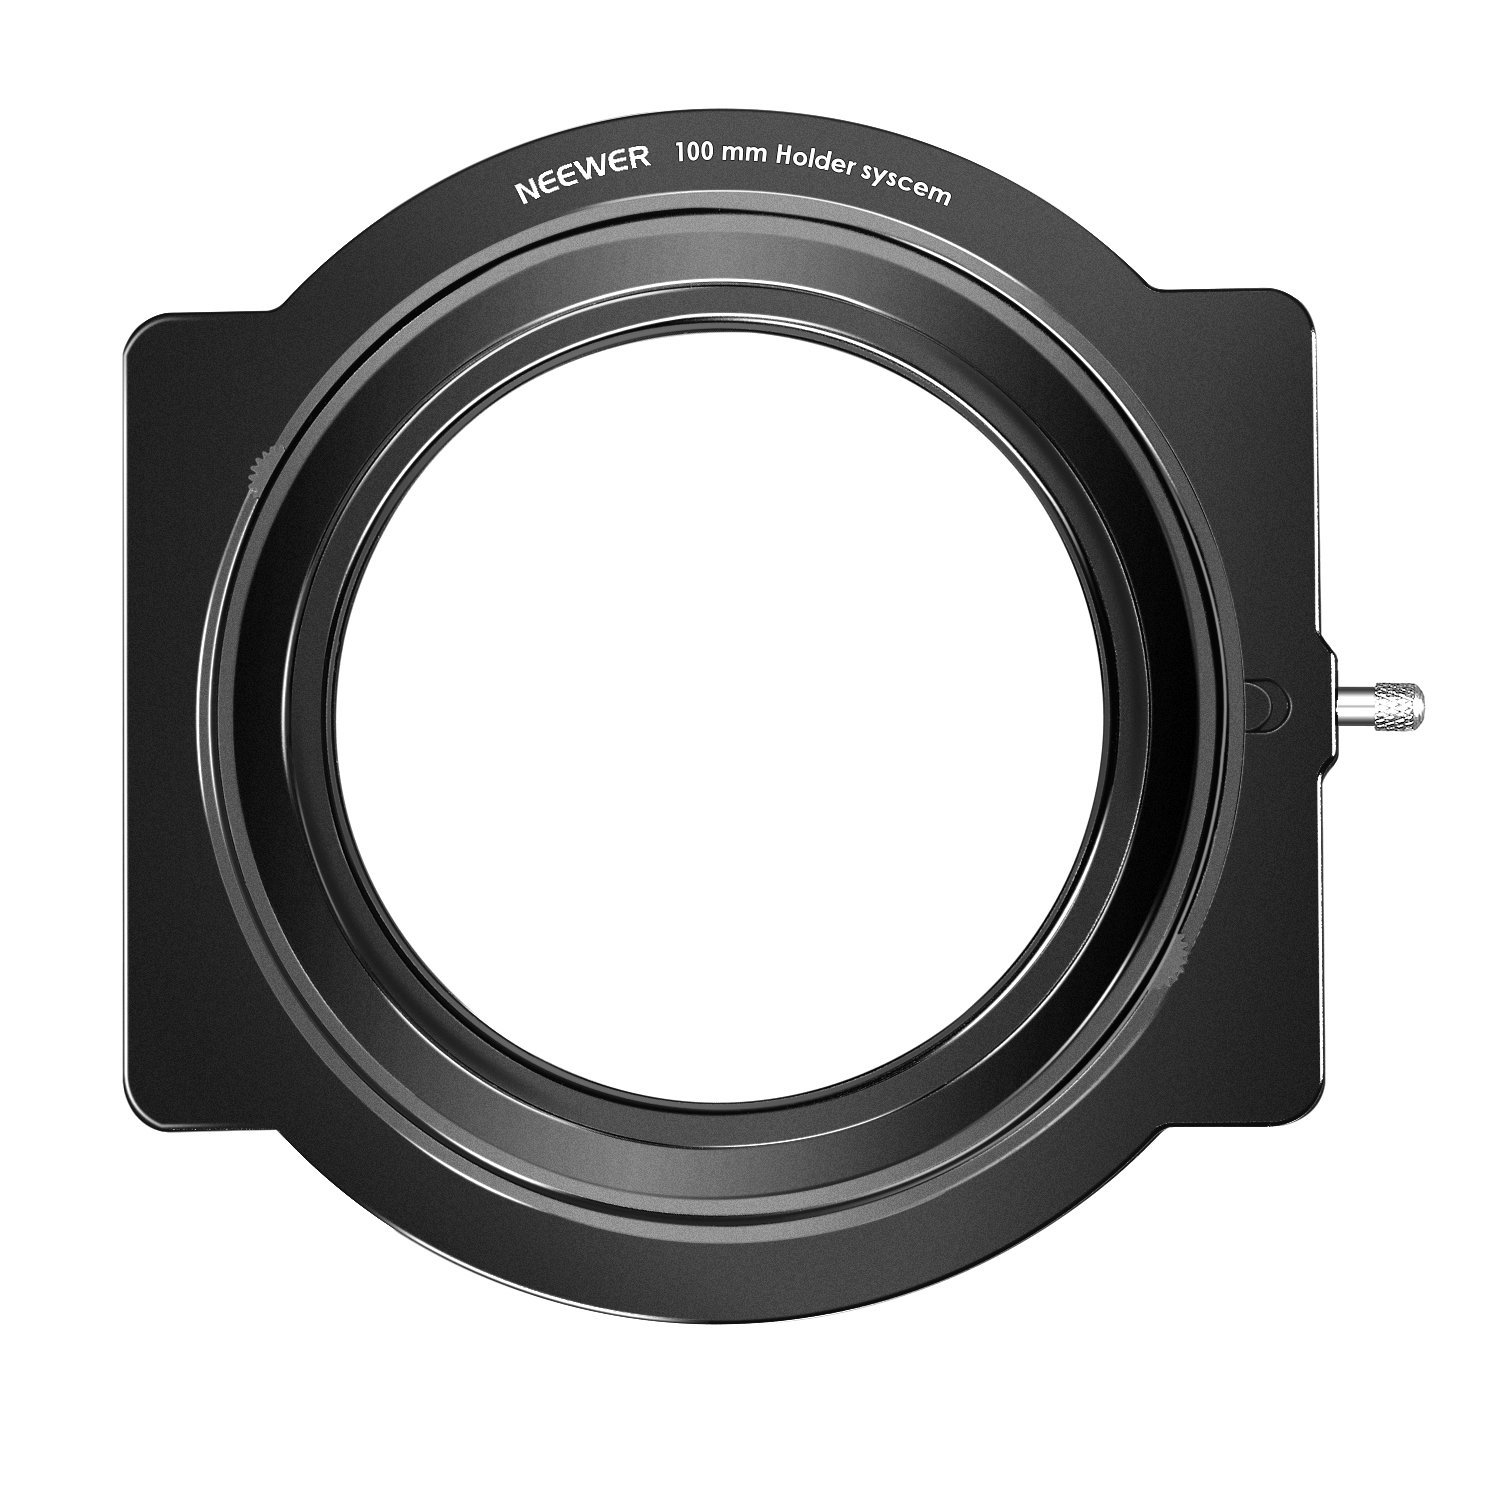 Neewer 100mm System Filter Holder Kit- 86mm CPL Filter, Filter Holder and 52mm/55mm /58mm/62mm/67mm/72mm/77mm Adapter Ring, Compatible with Lee Cokin Hitech Singh-ray